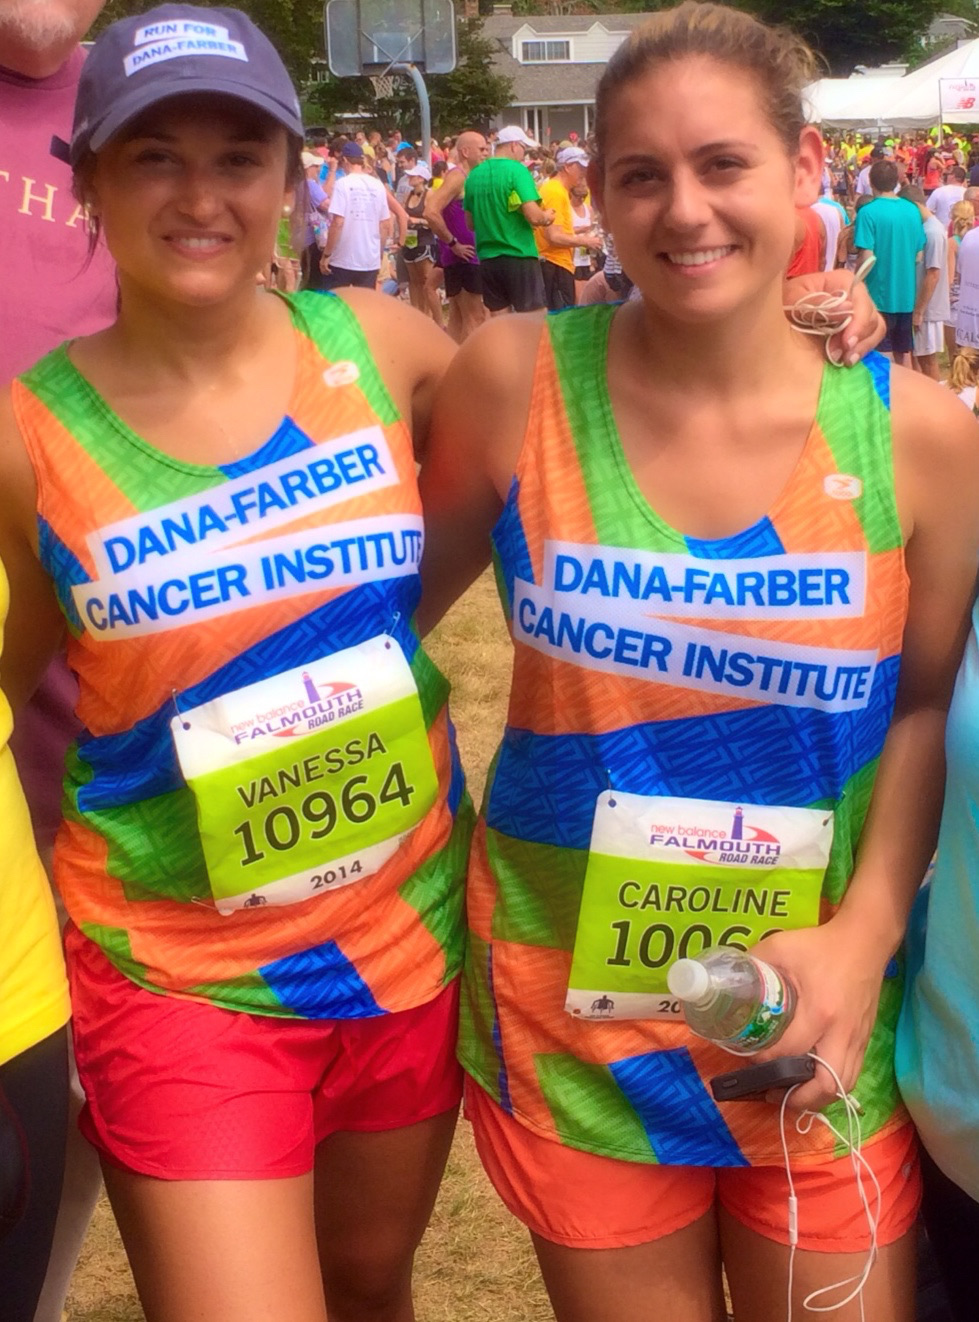 Vanessa and cousin Caroline at Falmouth Road Race, August 2014